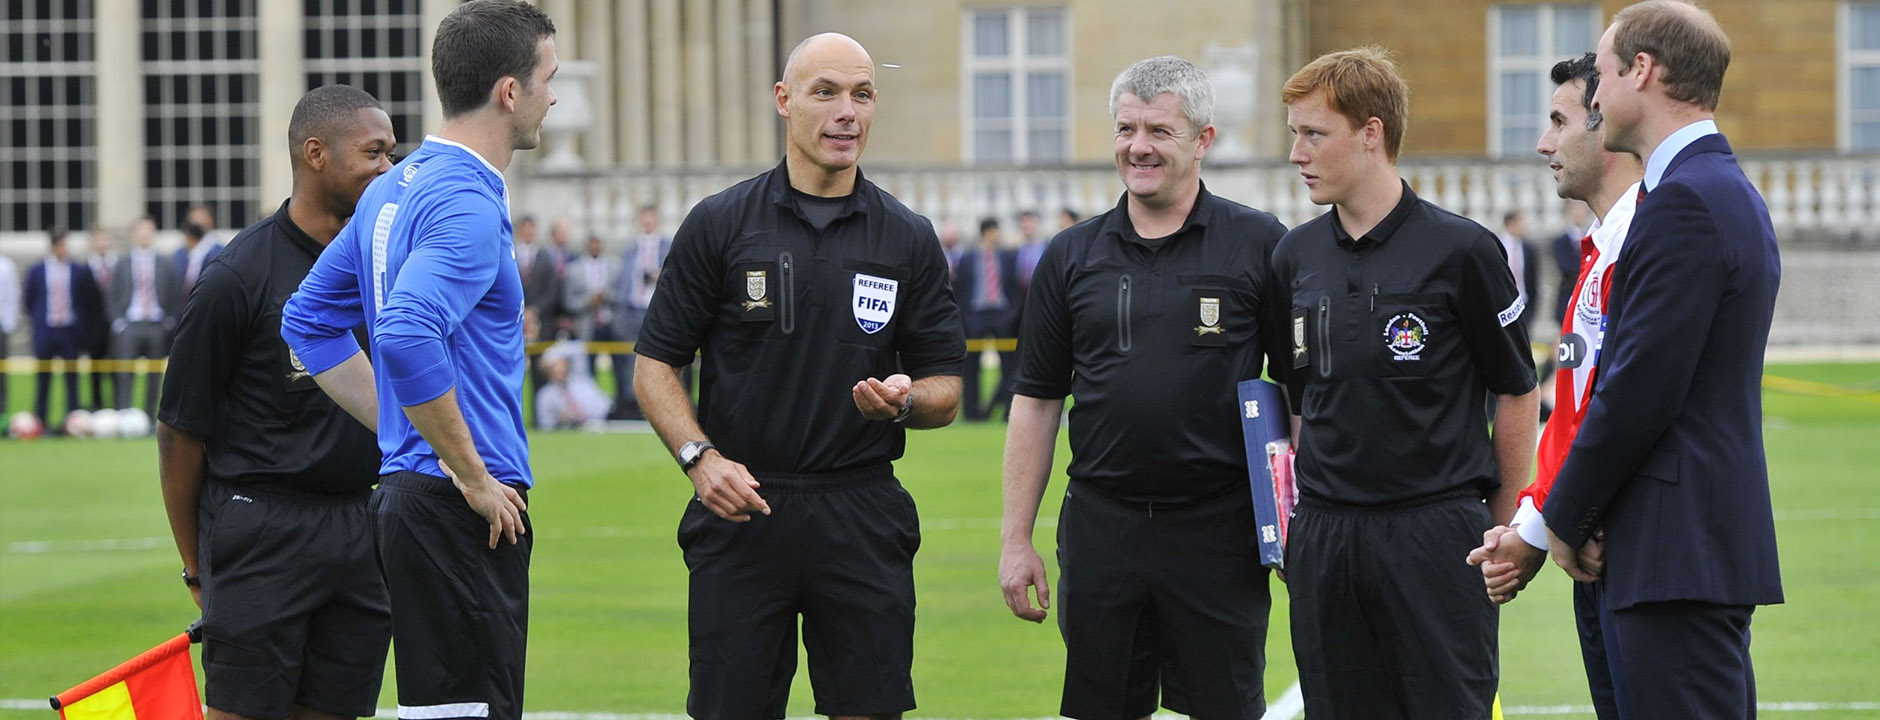 4 Soccer Referee Secrets for the Ceremonial Coin Toss